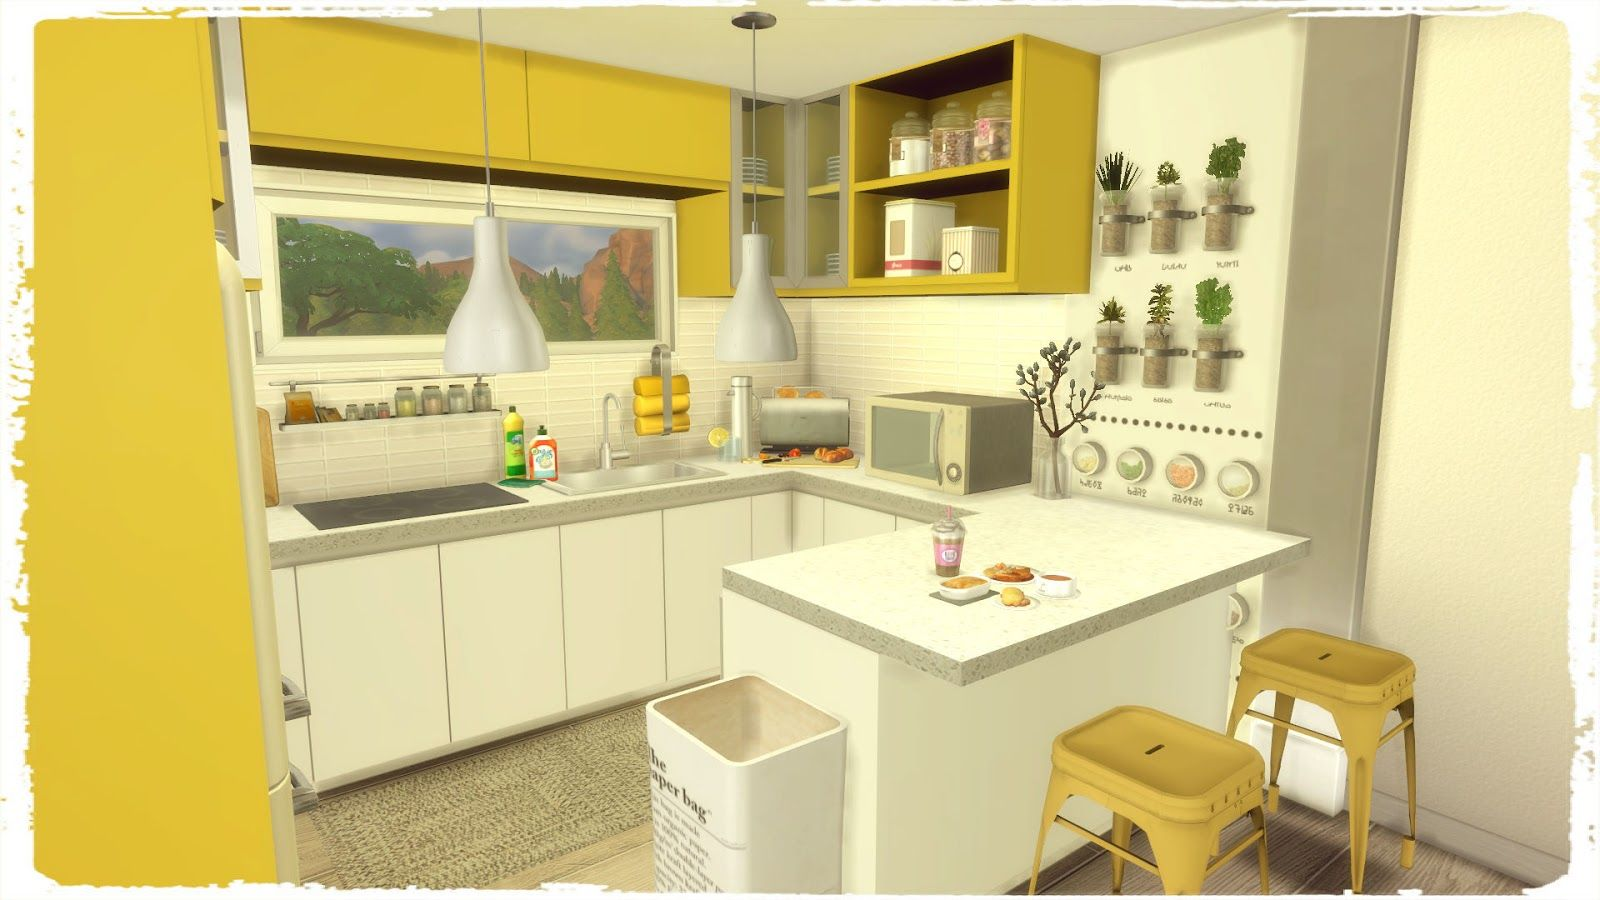 Sims 4 - Blue & Yellow Kitchen with Livingroom   Yellow ...